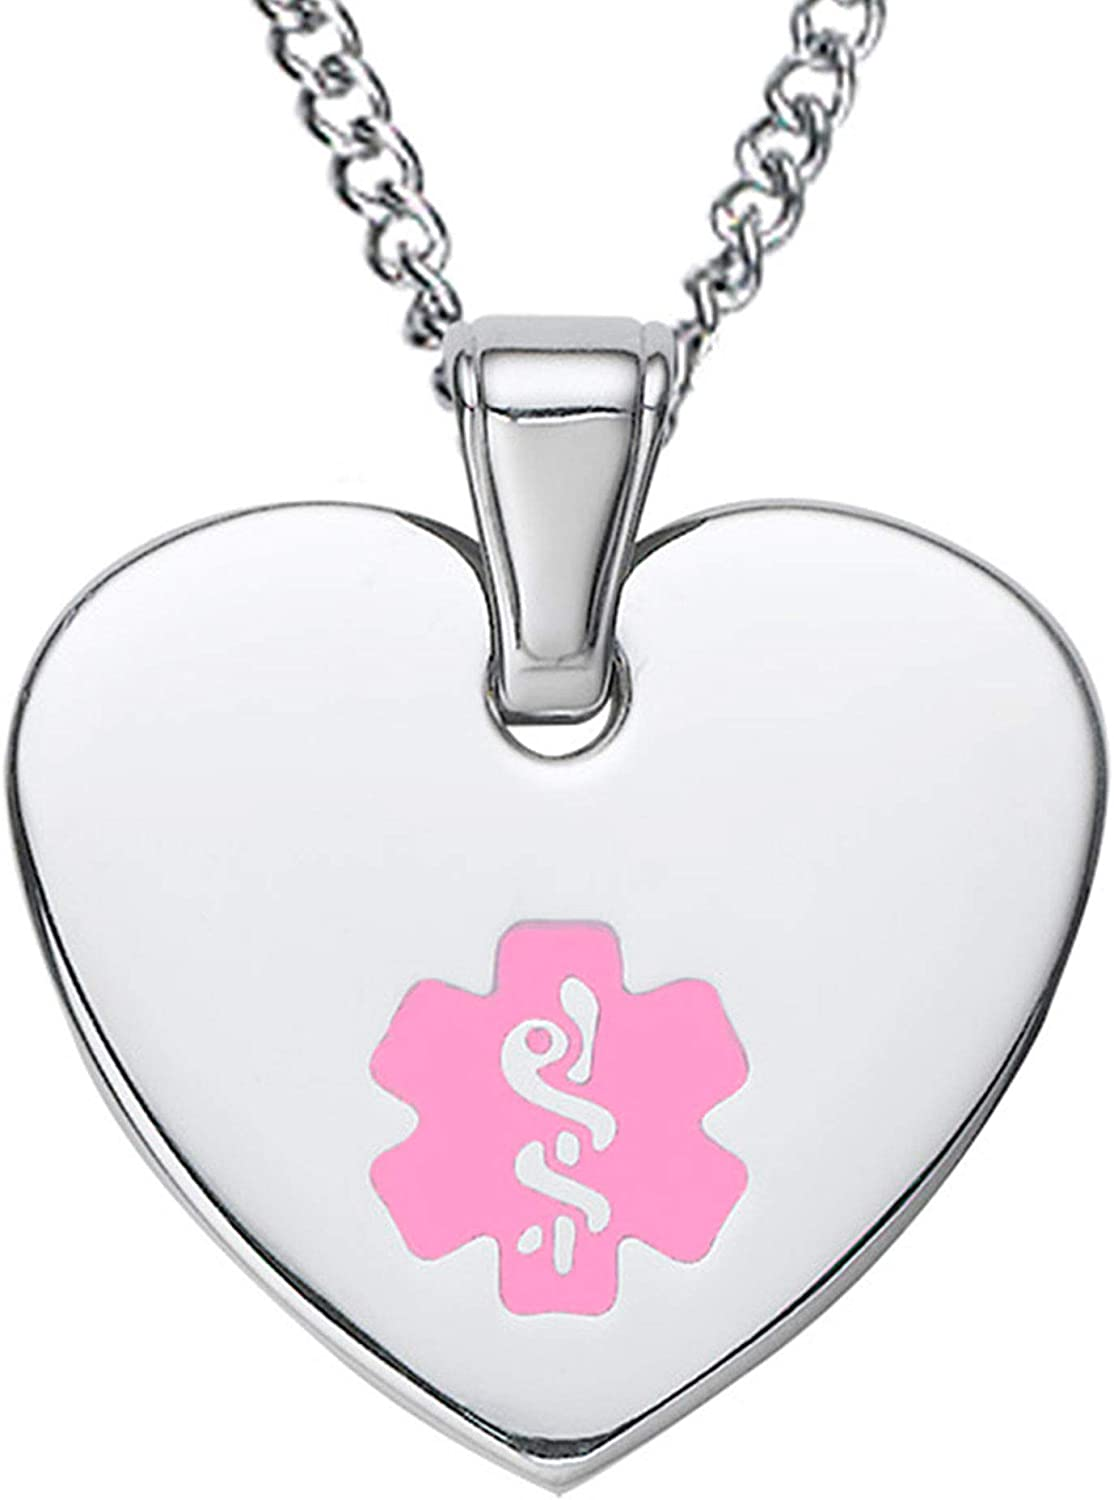 Divoti Deep Custom Laser Engraved Stainless Steel Medical Alert Necklace for Women, Heart Tag Medical ID Necklace, Medical Pendant Tag w Free Engraving -24 28 Various Chain -Color Options